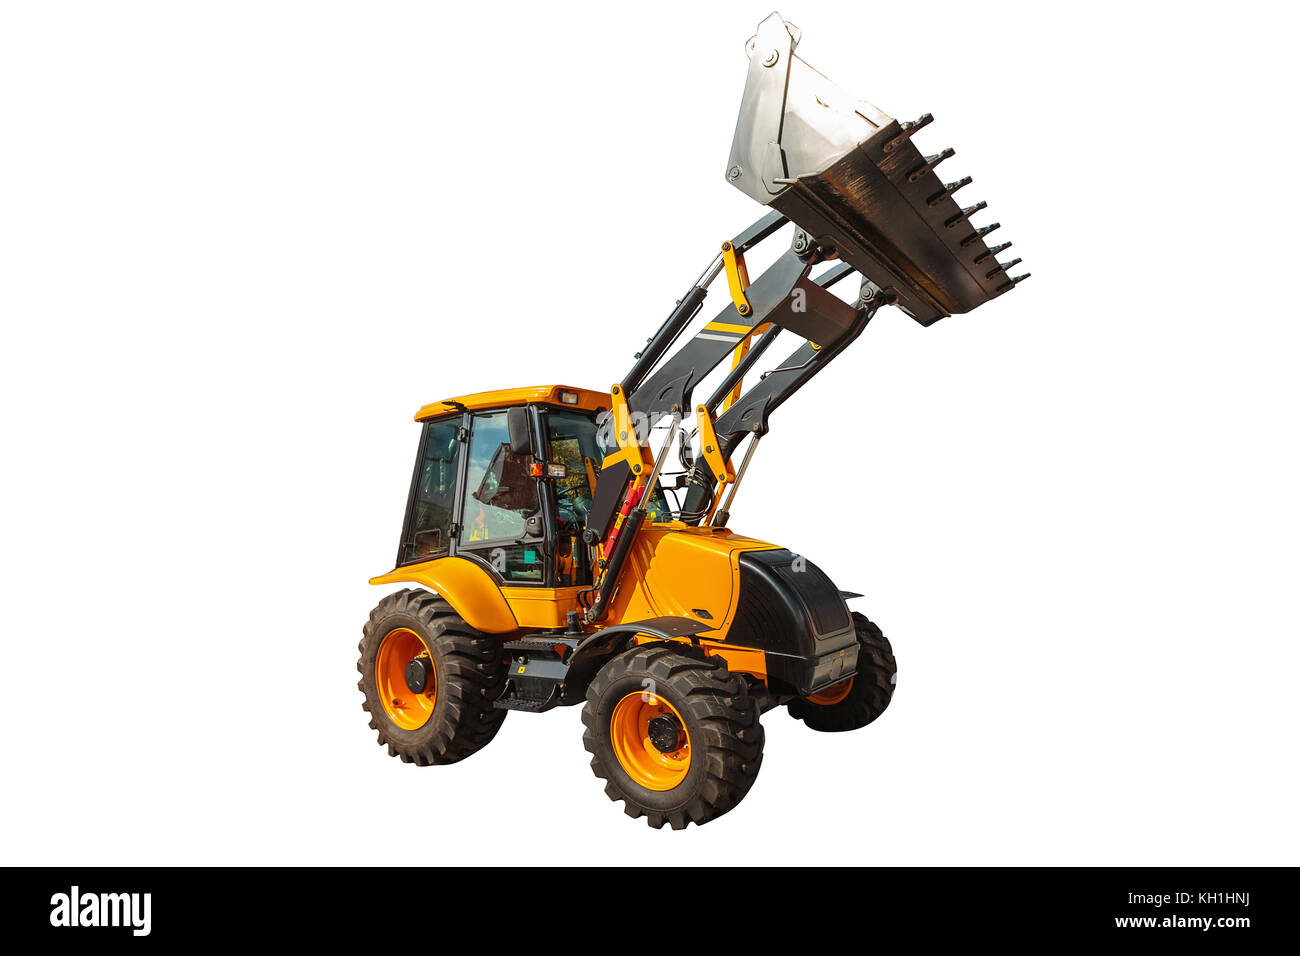 Backhoe loader or bulldozer - excavator isolated on white background with clipping path - Stock Image